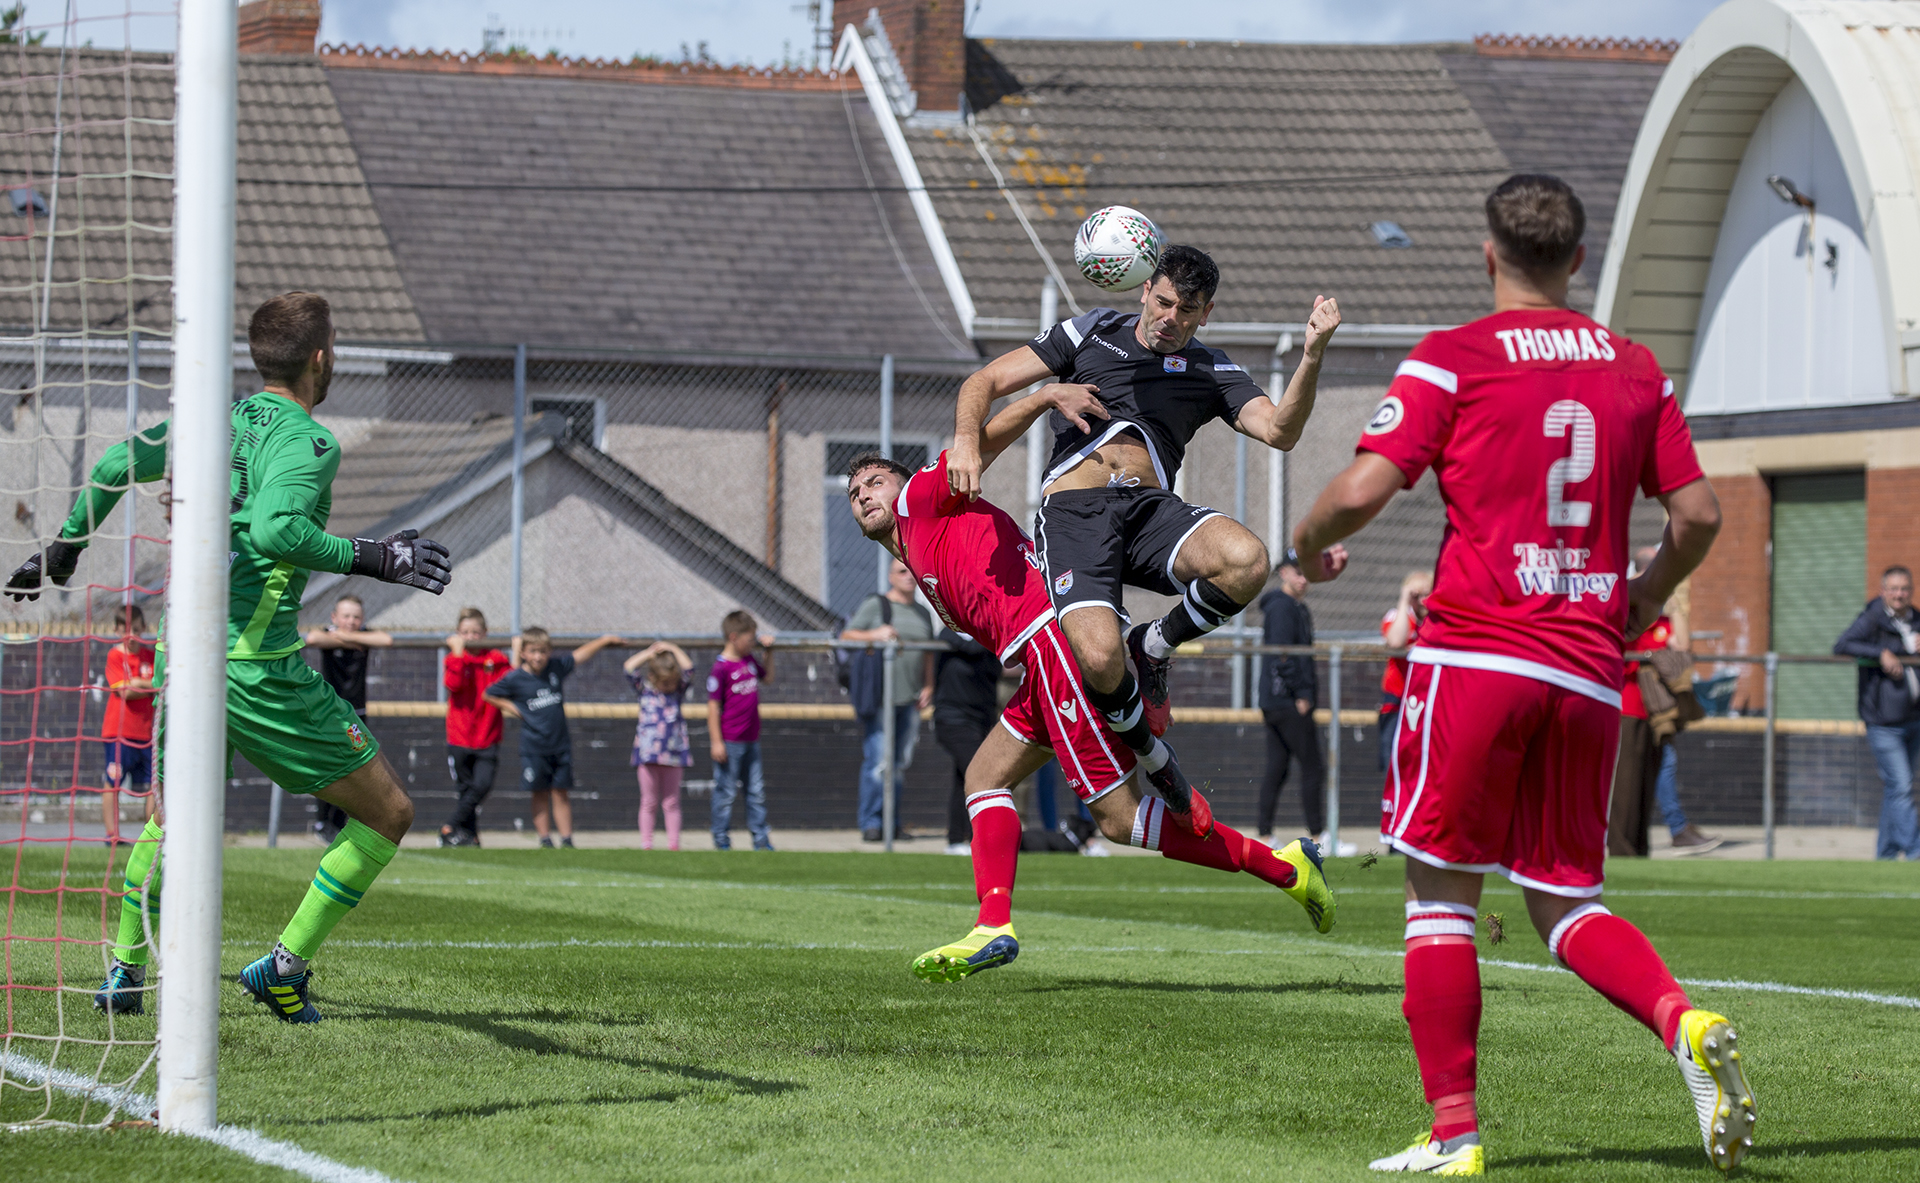 Michael Wilde heads home to score The Nomads' first goal of the 2018/19 campaign © NCM Media